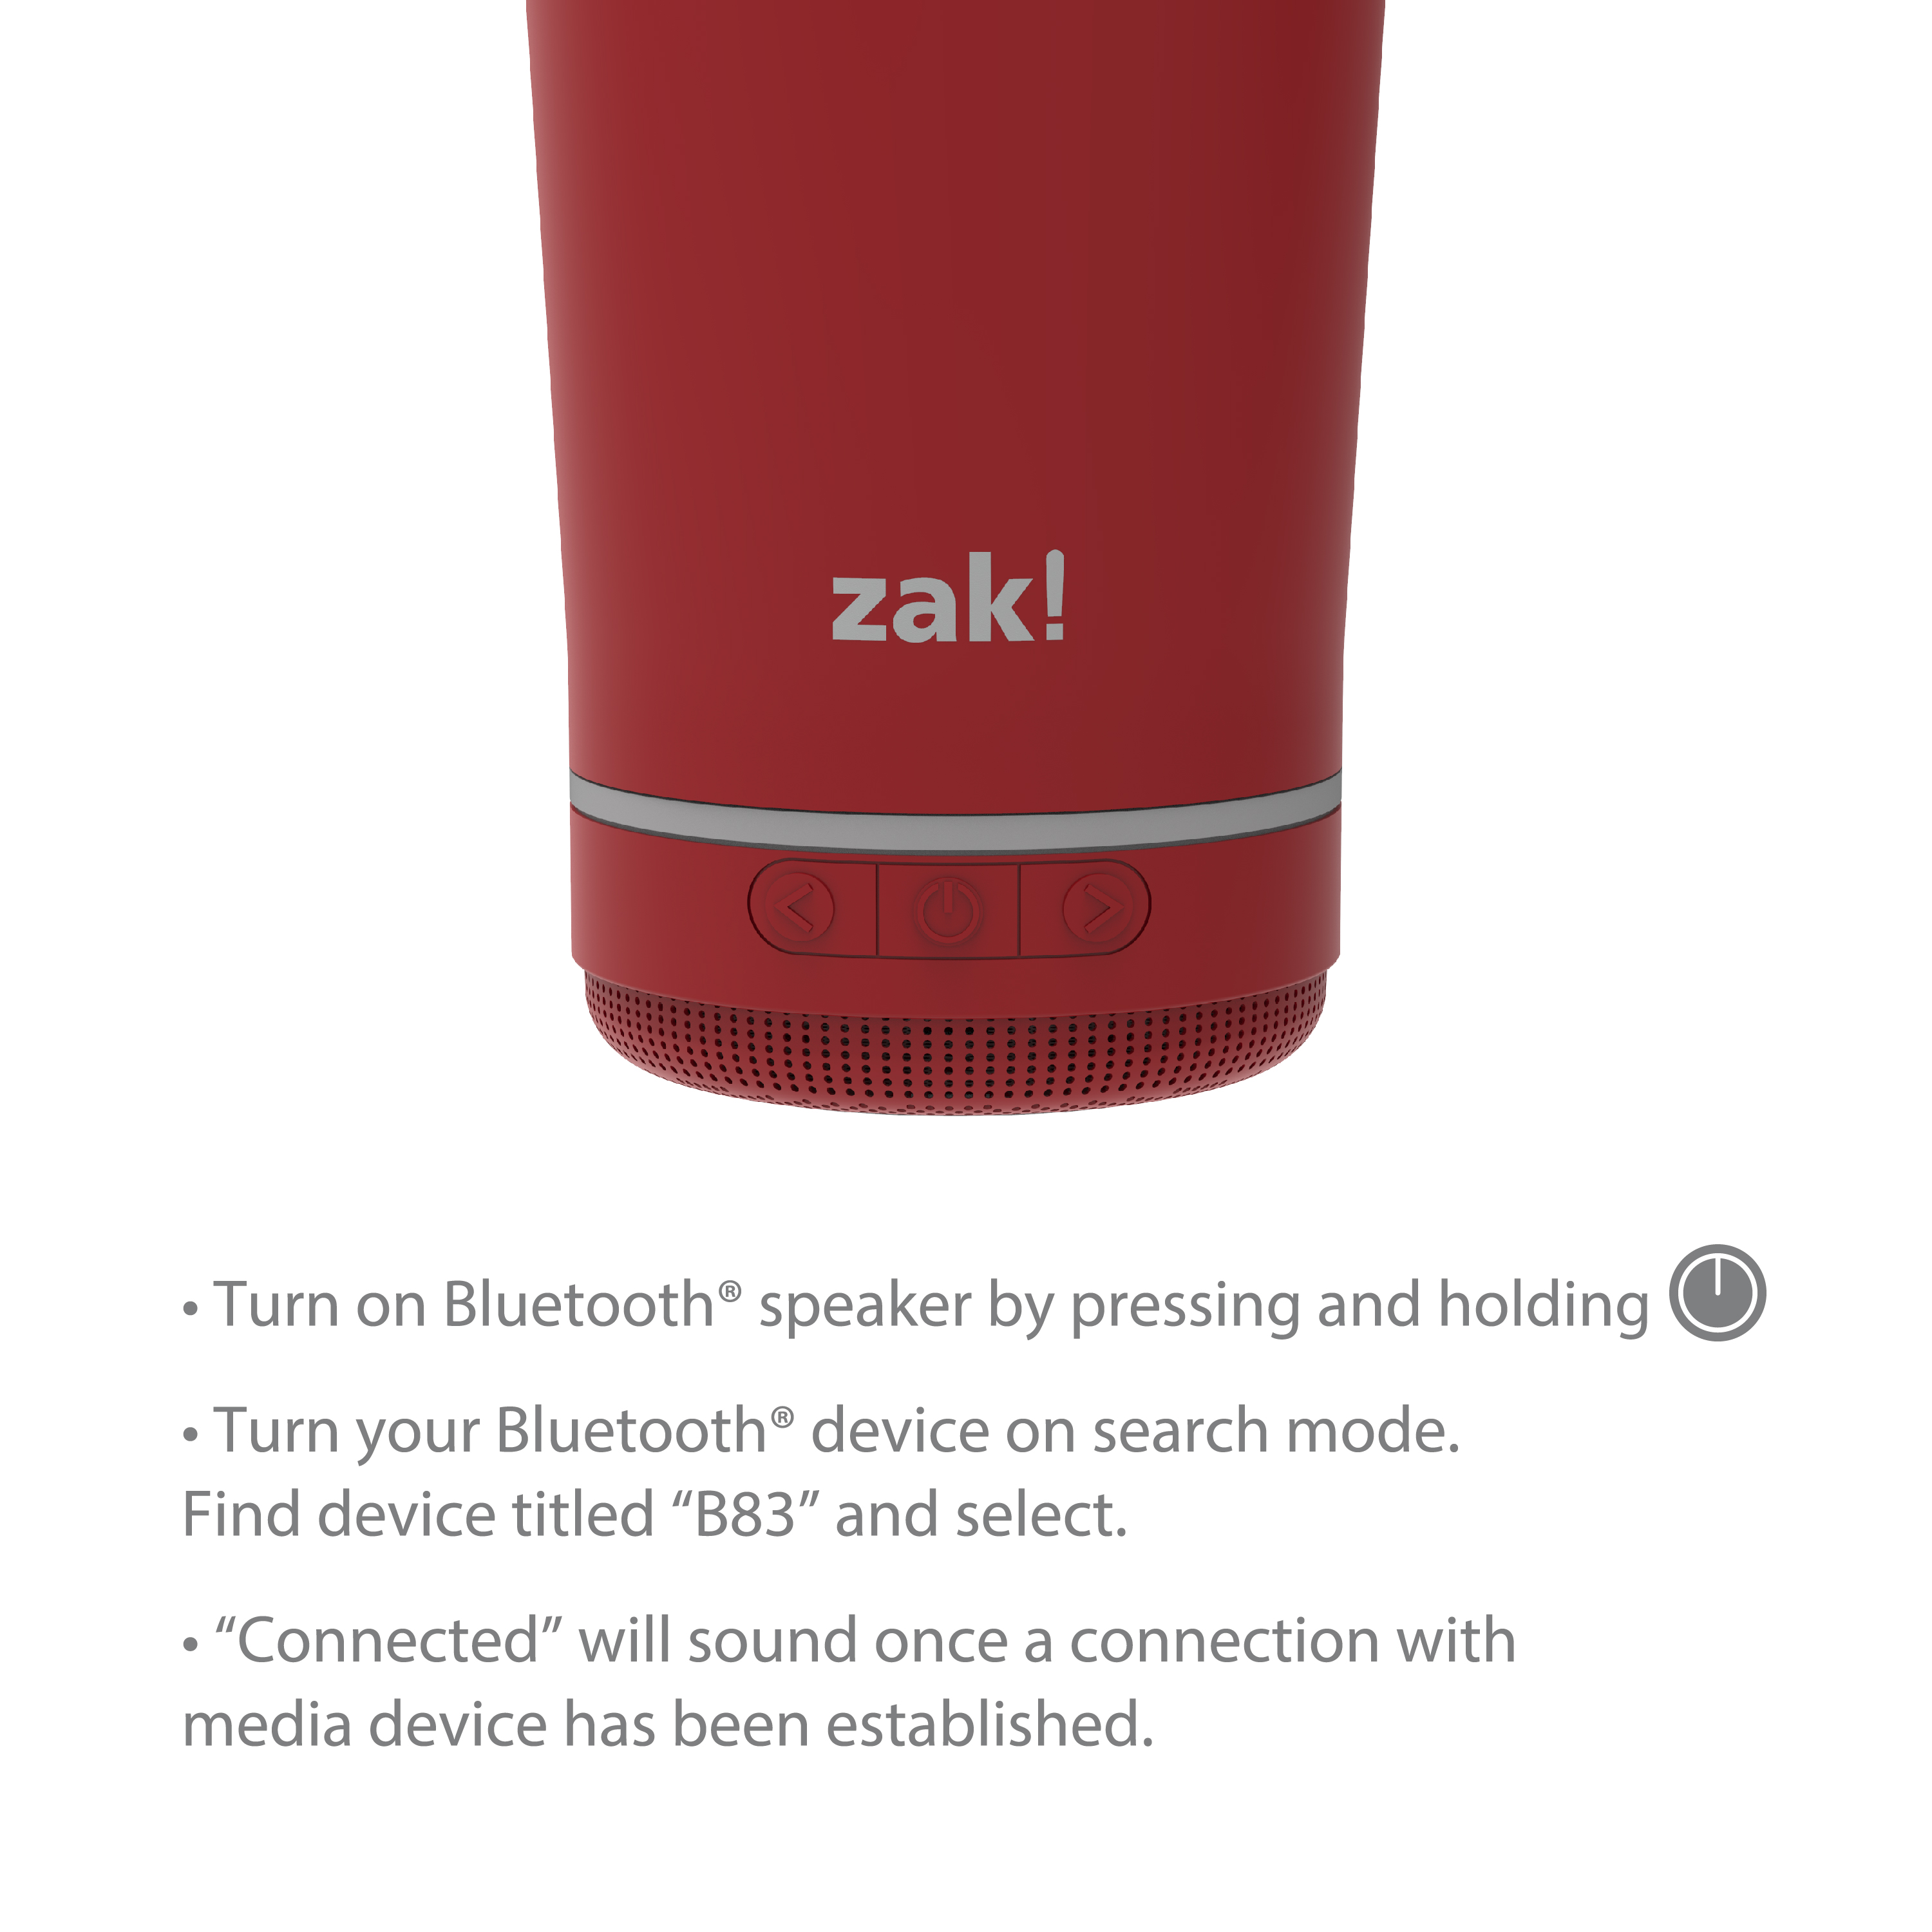 Zak Play 18 ounce Stainless Steel Tumbler with Bluetooth Speaker, Red slideshow image 8